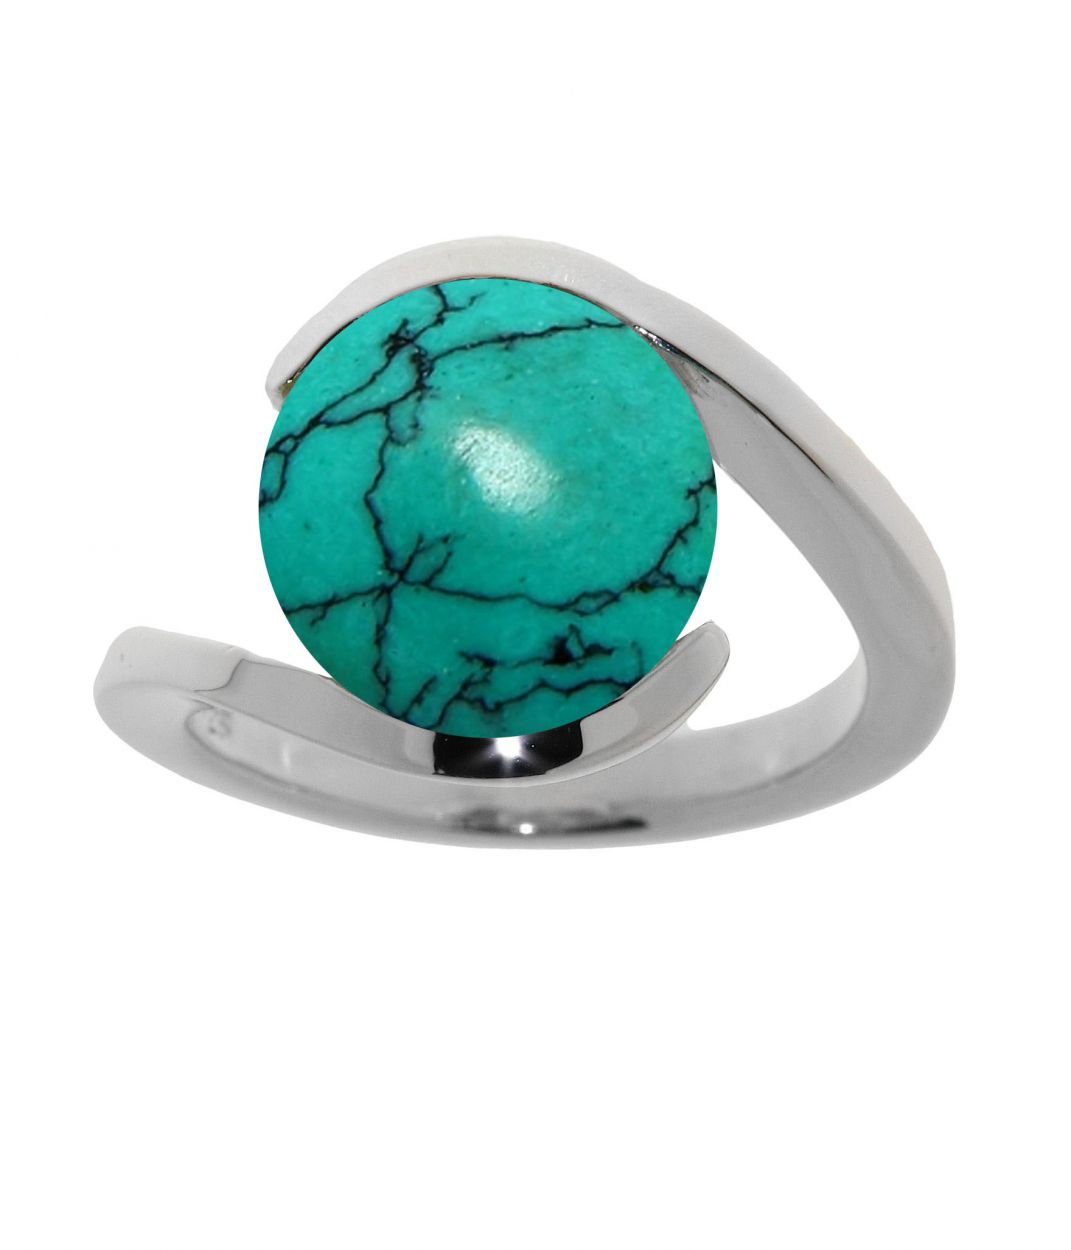 Bague turquoise moderne